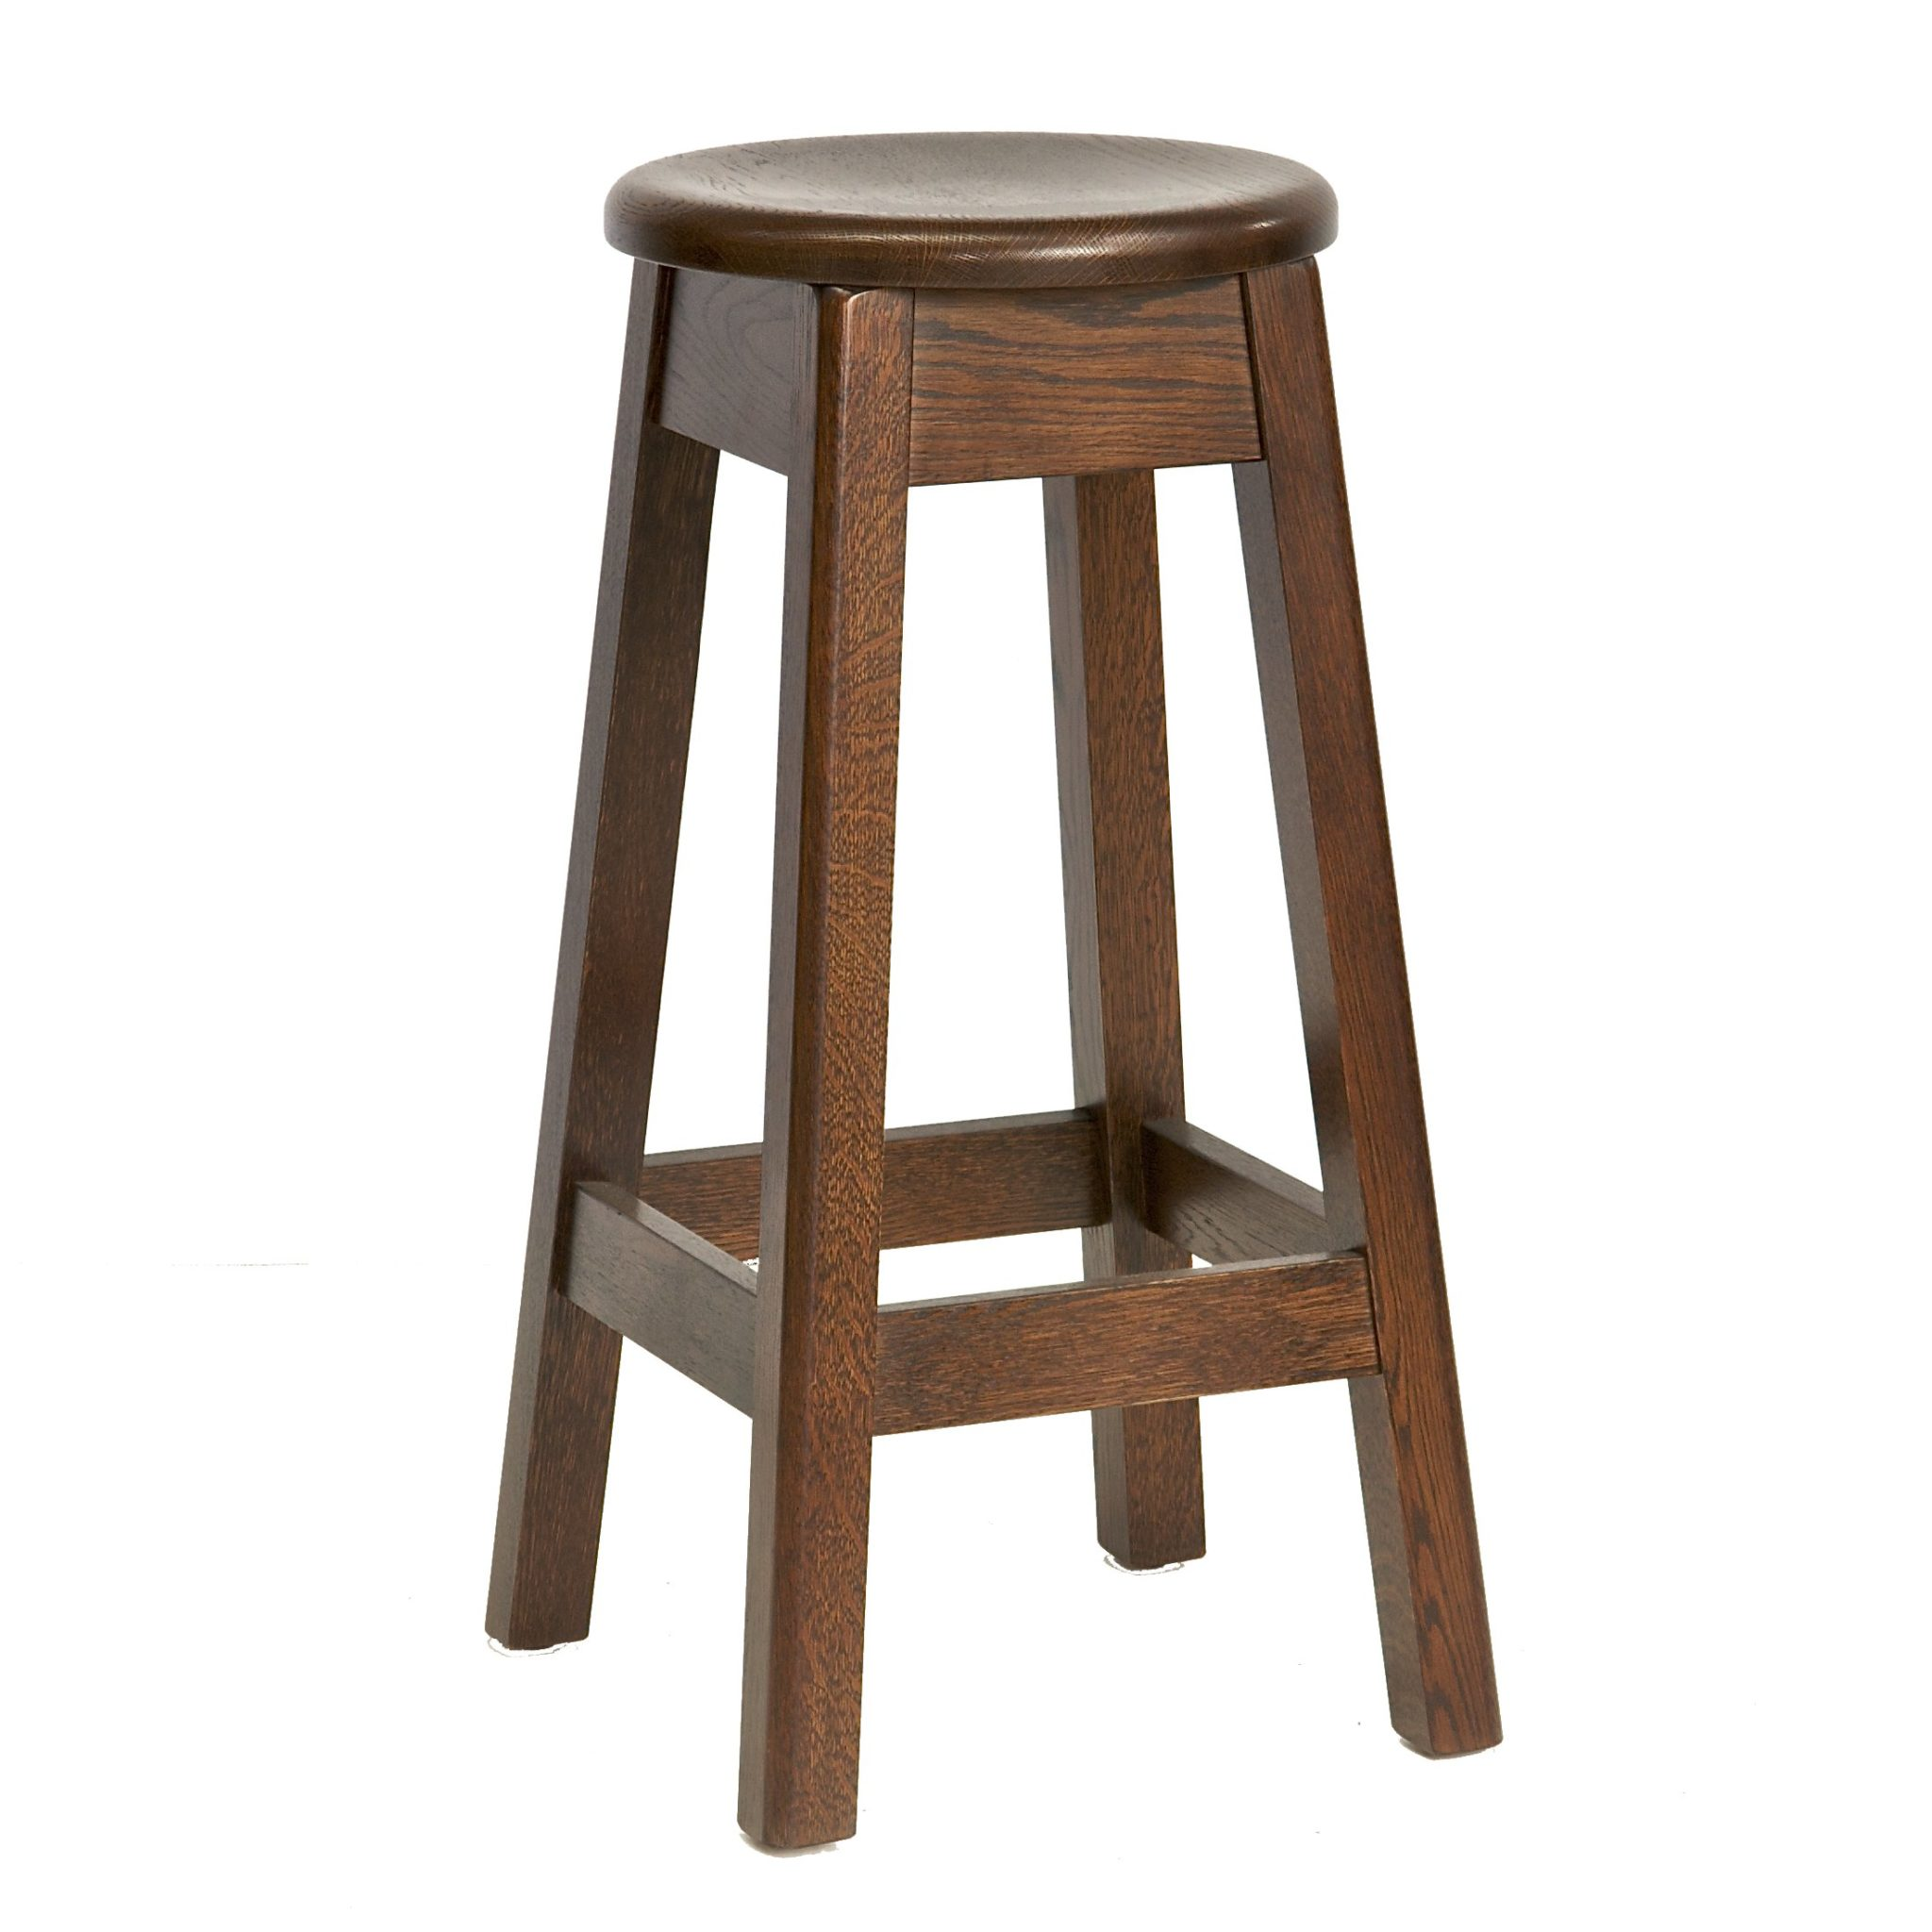 Texas Oak Bar Stool ByDezign NZ Ltd : Texasoakbarstool from www.bydezignfurniture.co.nz size 2048 x 2048 jpeg 210kB